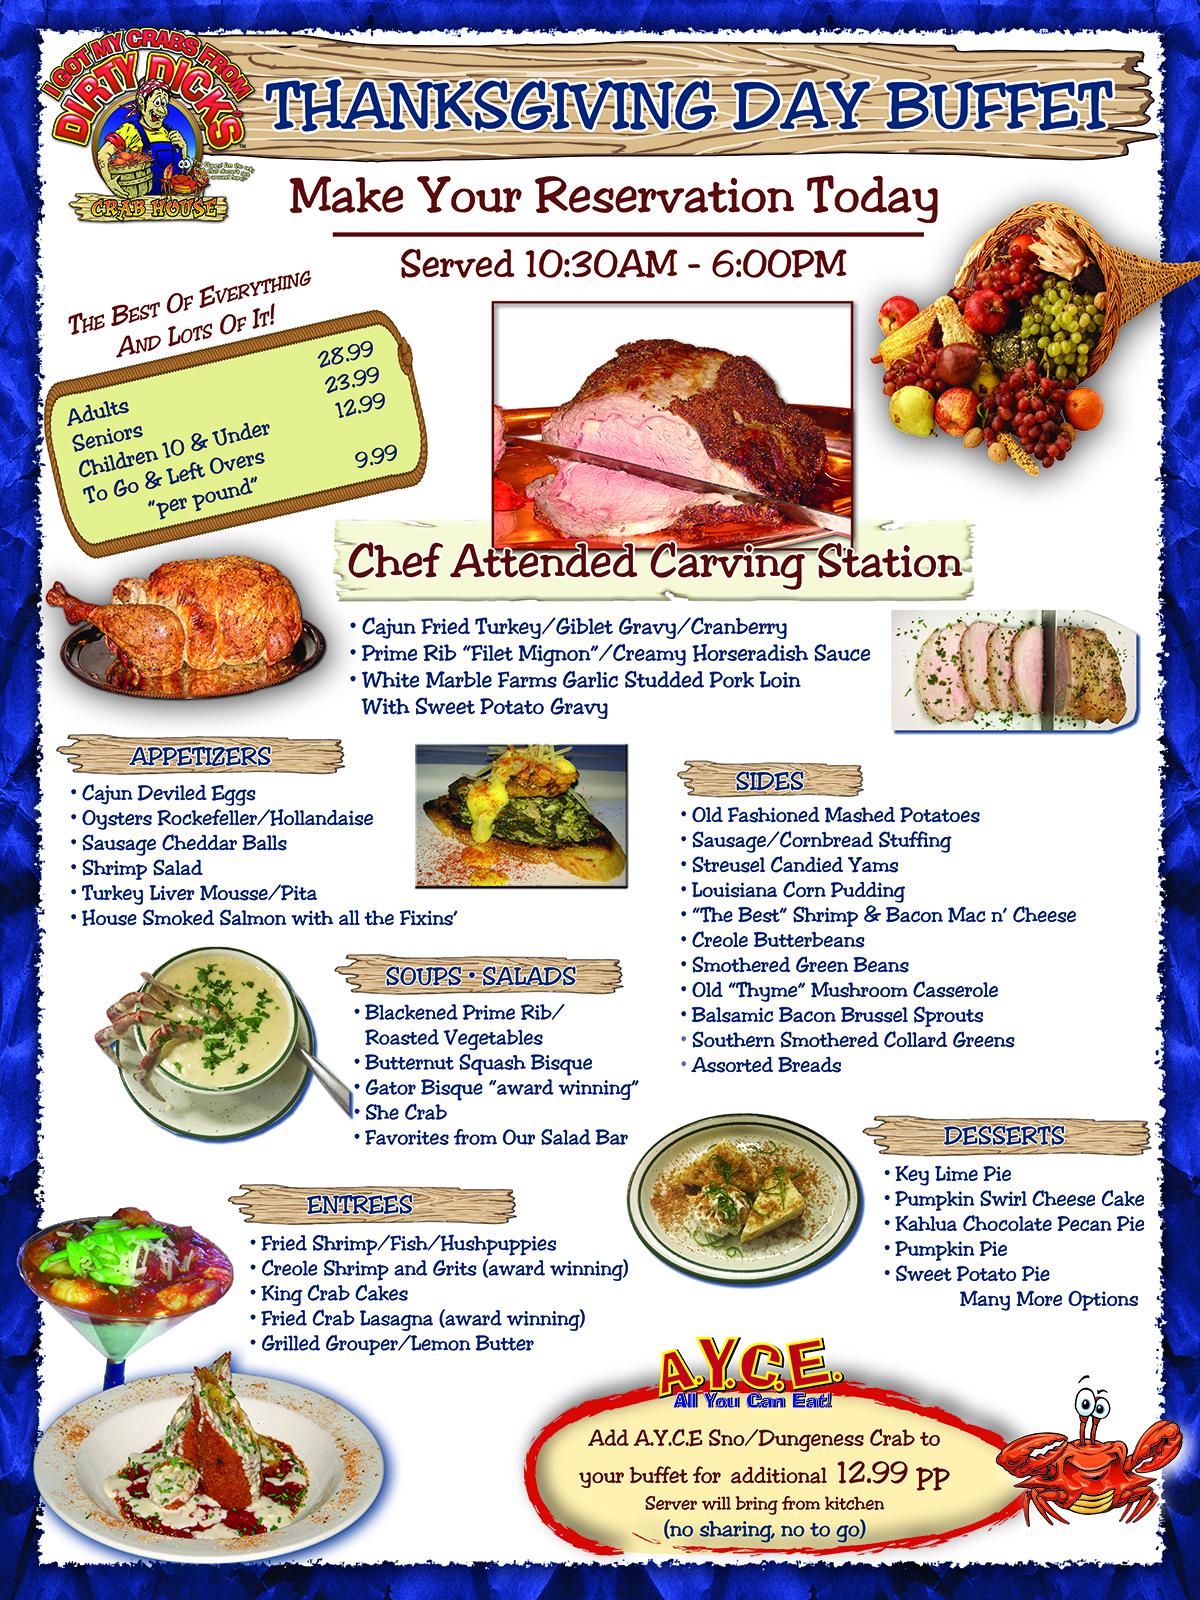 """Thanksgiving Day Buffet. Make your reservation today. Served 10:30AM – 6:00PM. The best of everything, and lots of it. Adults, $28.99. Seniors, $23.99. Children 10 & under, $12.99. To-go & leftovers """"per pound"""", $9.99. Chef Attended Carving Station. Cajun fried turkey, giblet gravy, cranberry. Prime rib """"Filet Mignon"""", creamy horseradish sauce. White marble farms garlic studded pork loin with sweet potato gravy. Appetizers. Cajun deviled eggs, oysters Rockefeller/hollandaise, sausage cheddar balls, shrimp salad, turkey liver mousse/pita, house smoked salmon with all the fixings. Sides. Old fashioned mashed potatoes, sausage/cornbread stuffing, streusel candied yams, Louisiana corn pudding, """"the best"""" shrimp and bacon mac and cheese, creole butterbeans, smothered green beans, old """"thyme"""" mushroom casserole, balsamic bacon Brussel sprouts, southern smothered collard greens, assorted breads.  Soups & Salads. Blackened prime rib/roasted vegetables, butternut squash bisque, gator bisque """"award winning"""", she crab, favorites from our salad bar. Entrees. Fried shrimp/fish/hushpuppies, creole shrimp and grits (award winning), king crab cakes, fried crab lasagna (award winning), grille grouper/lemon butter. Desserts. Key lime pie, pumpkin swirl cheesecake, Kahlua chocolate pecan pie, pumpkin pie, sweet potato pie, and many more options. All you can eat. Ass All you can eat Sno/Dungeness crab to your buffet for an additional $12.99 per person. Server will bring from kitchen, no sharing, no to-go."""